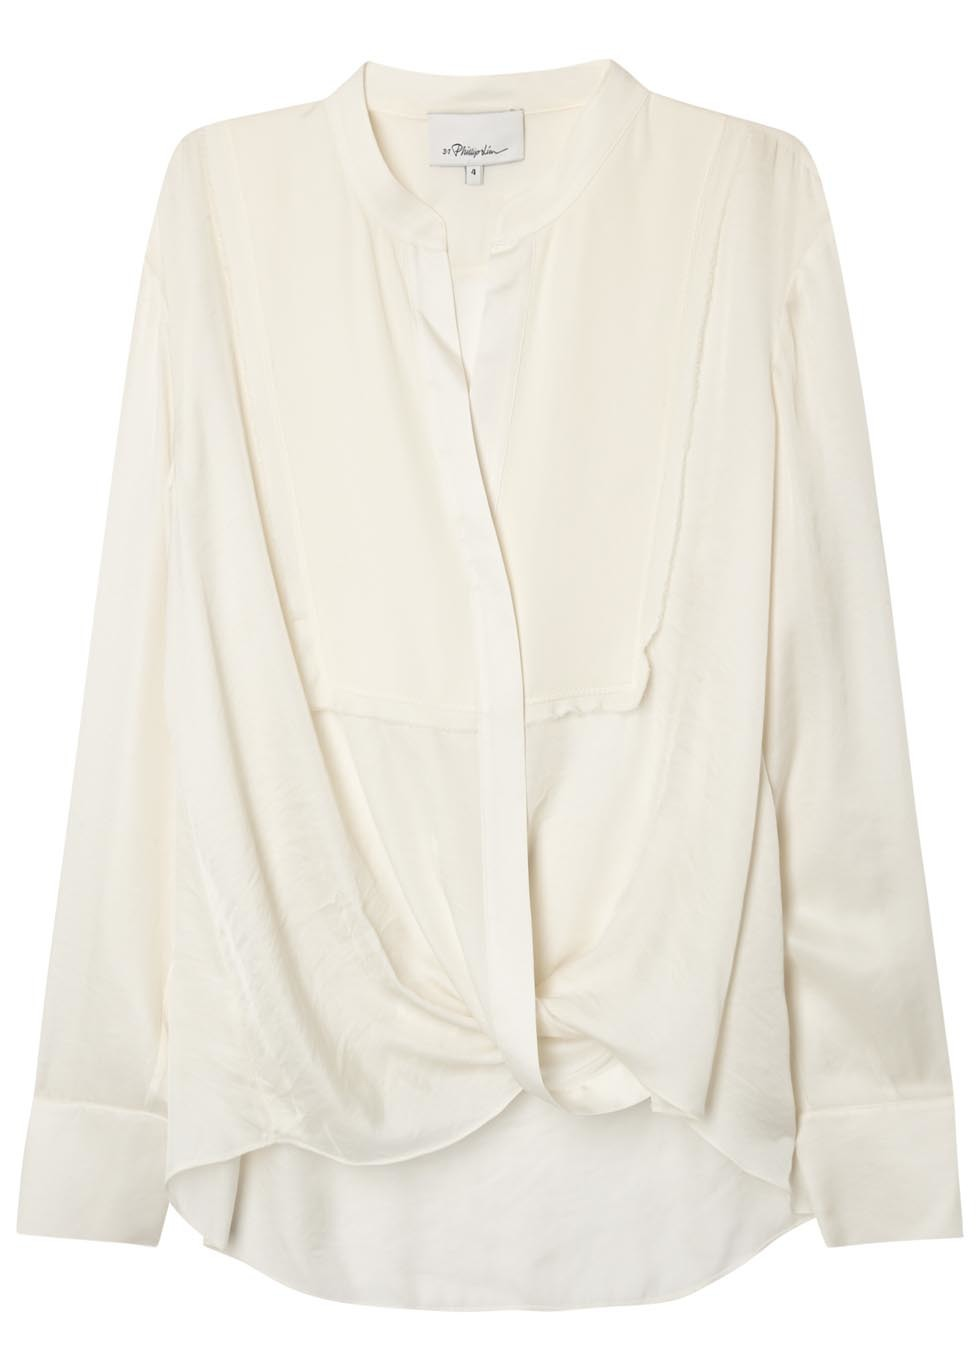 Ivory Draped Satin Twill Blouse - neckline: v-neck; pattern: plain; style: wrap/faux wrap; predominant colour: ivory/cream; occasions: evening; length: standard; fit: body skimming; sleeve length: long sleeve; sleeve style: standard; texture group: crepes; pattern type: fabric; fibres: viscose/rayon - mix; season: s/s 2016